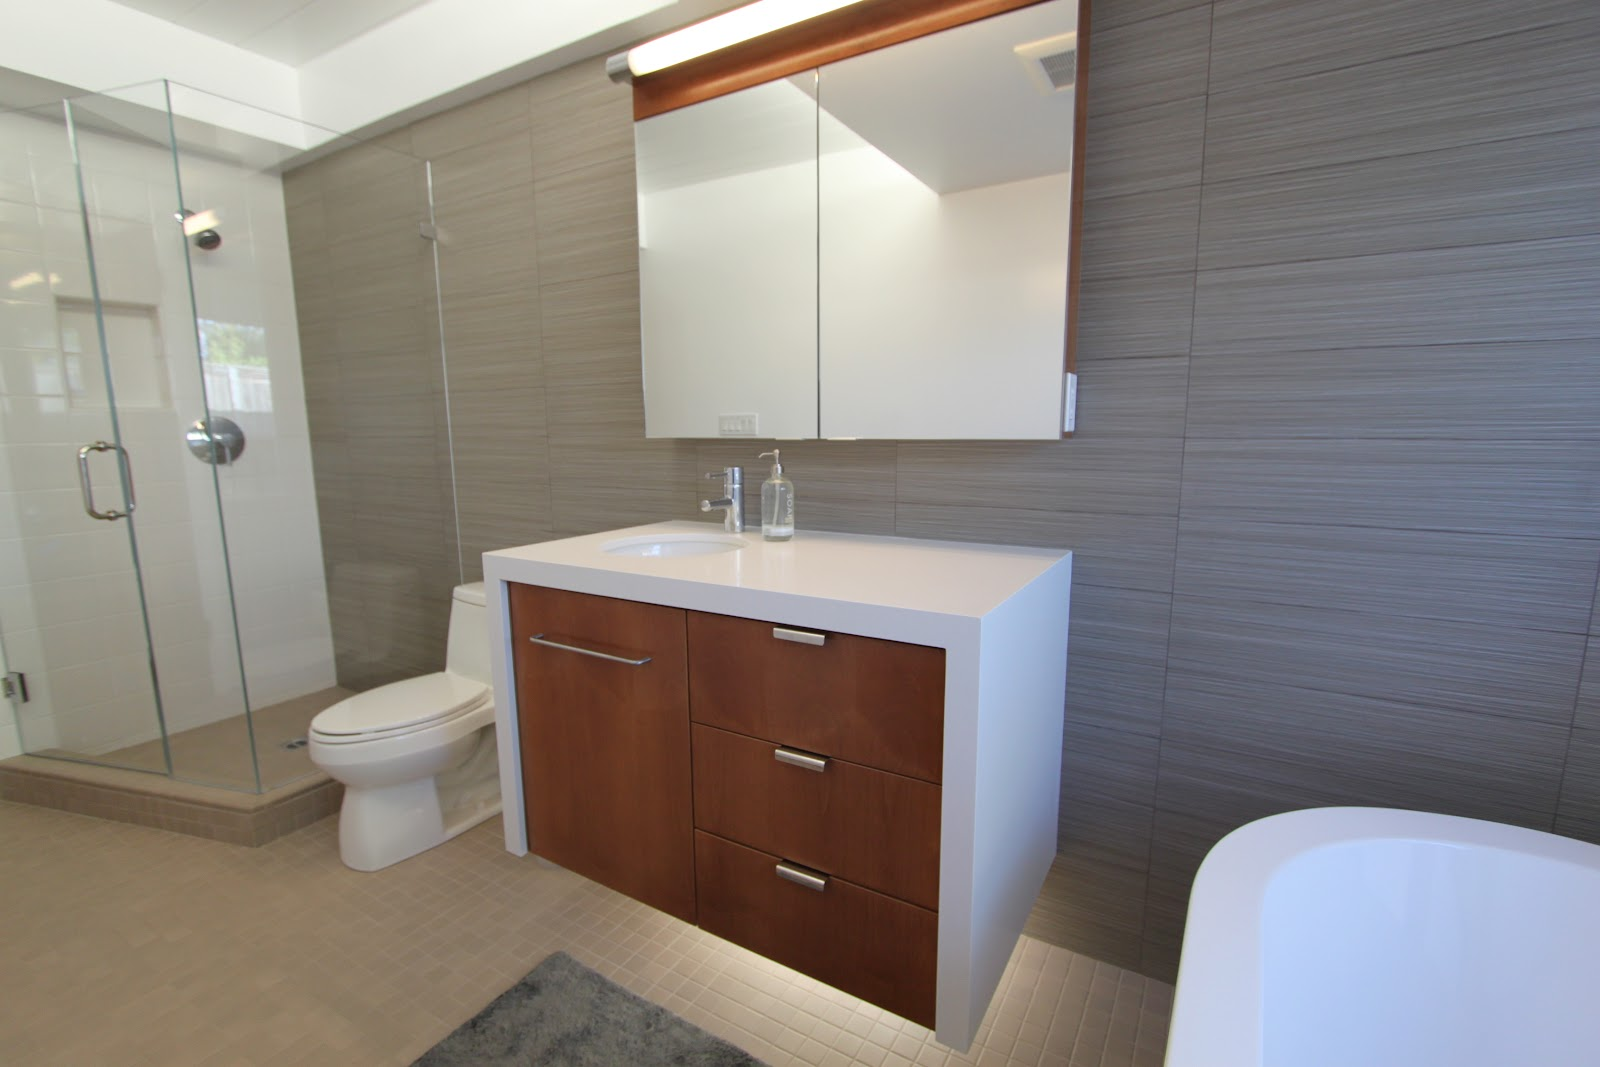 3 mid century bathrooms remodeled mid century modern remodel for Small modern bathroom